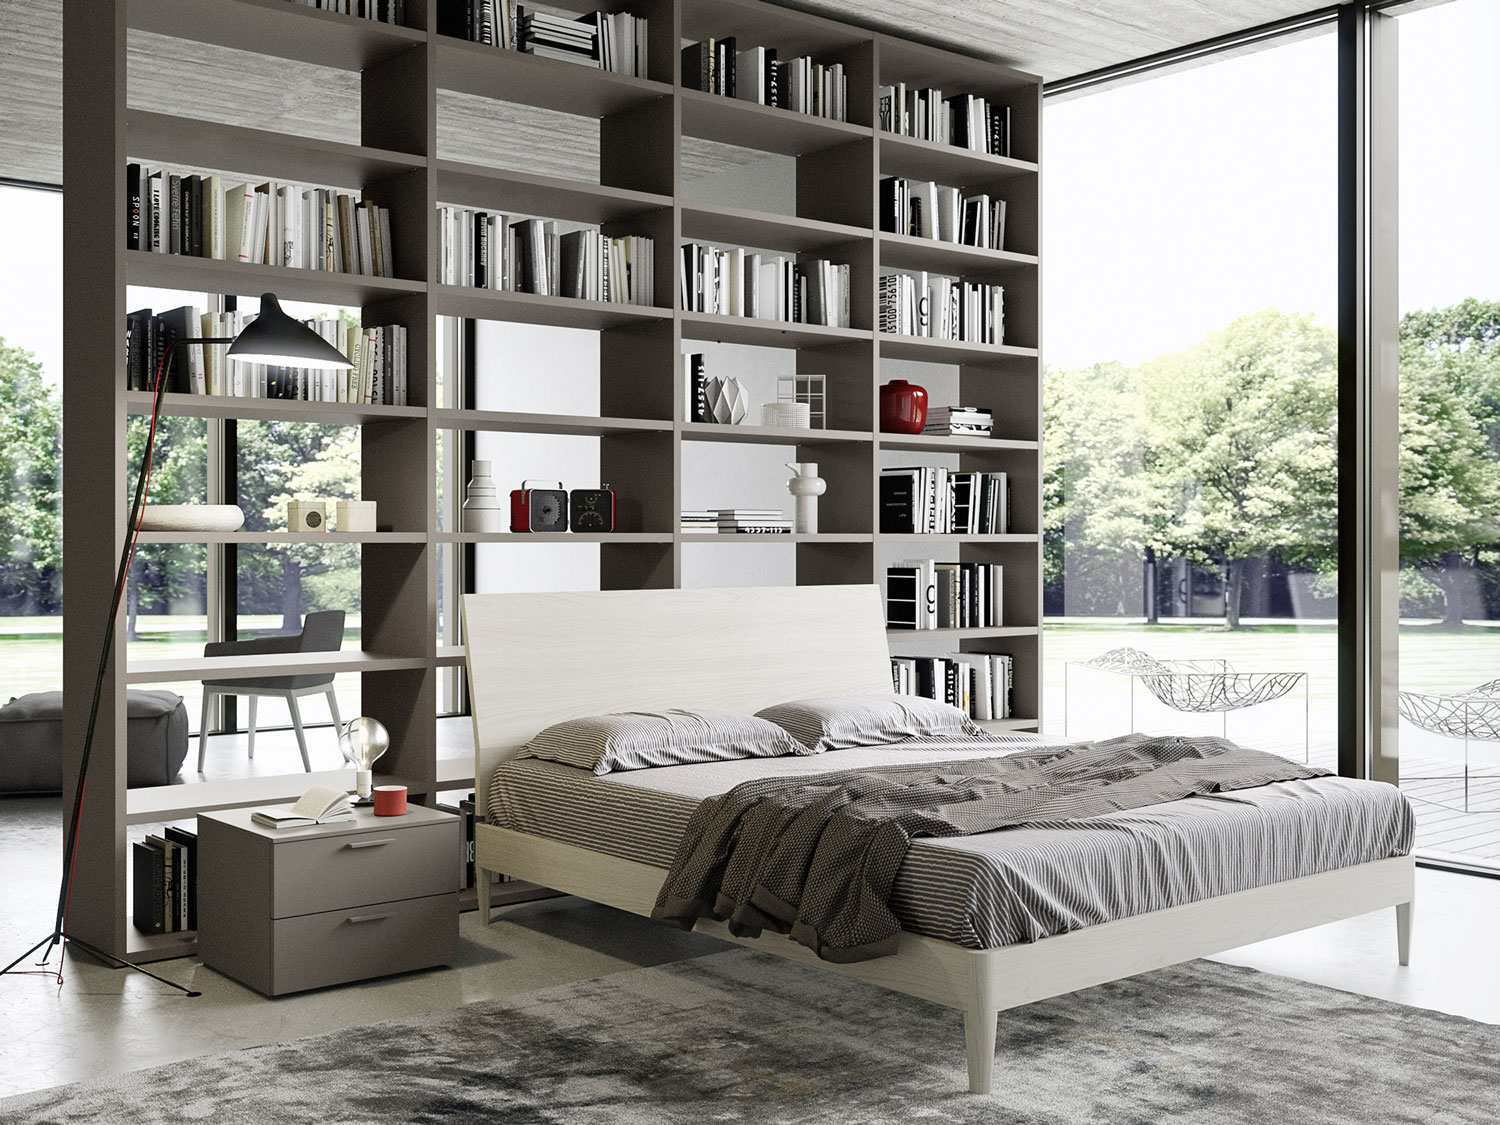 Libreria Design Camera Da Letto | Joodsecomponisten